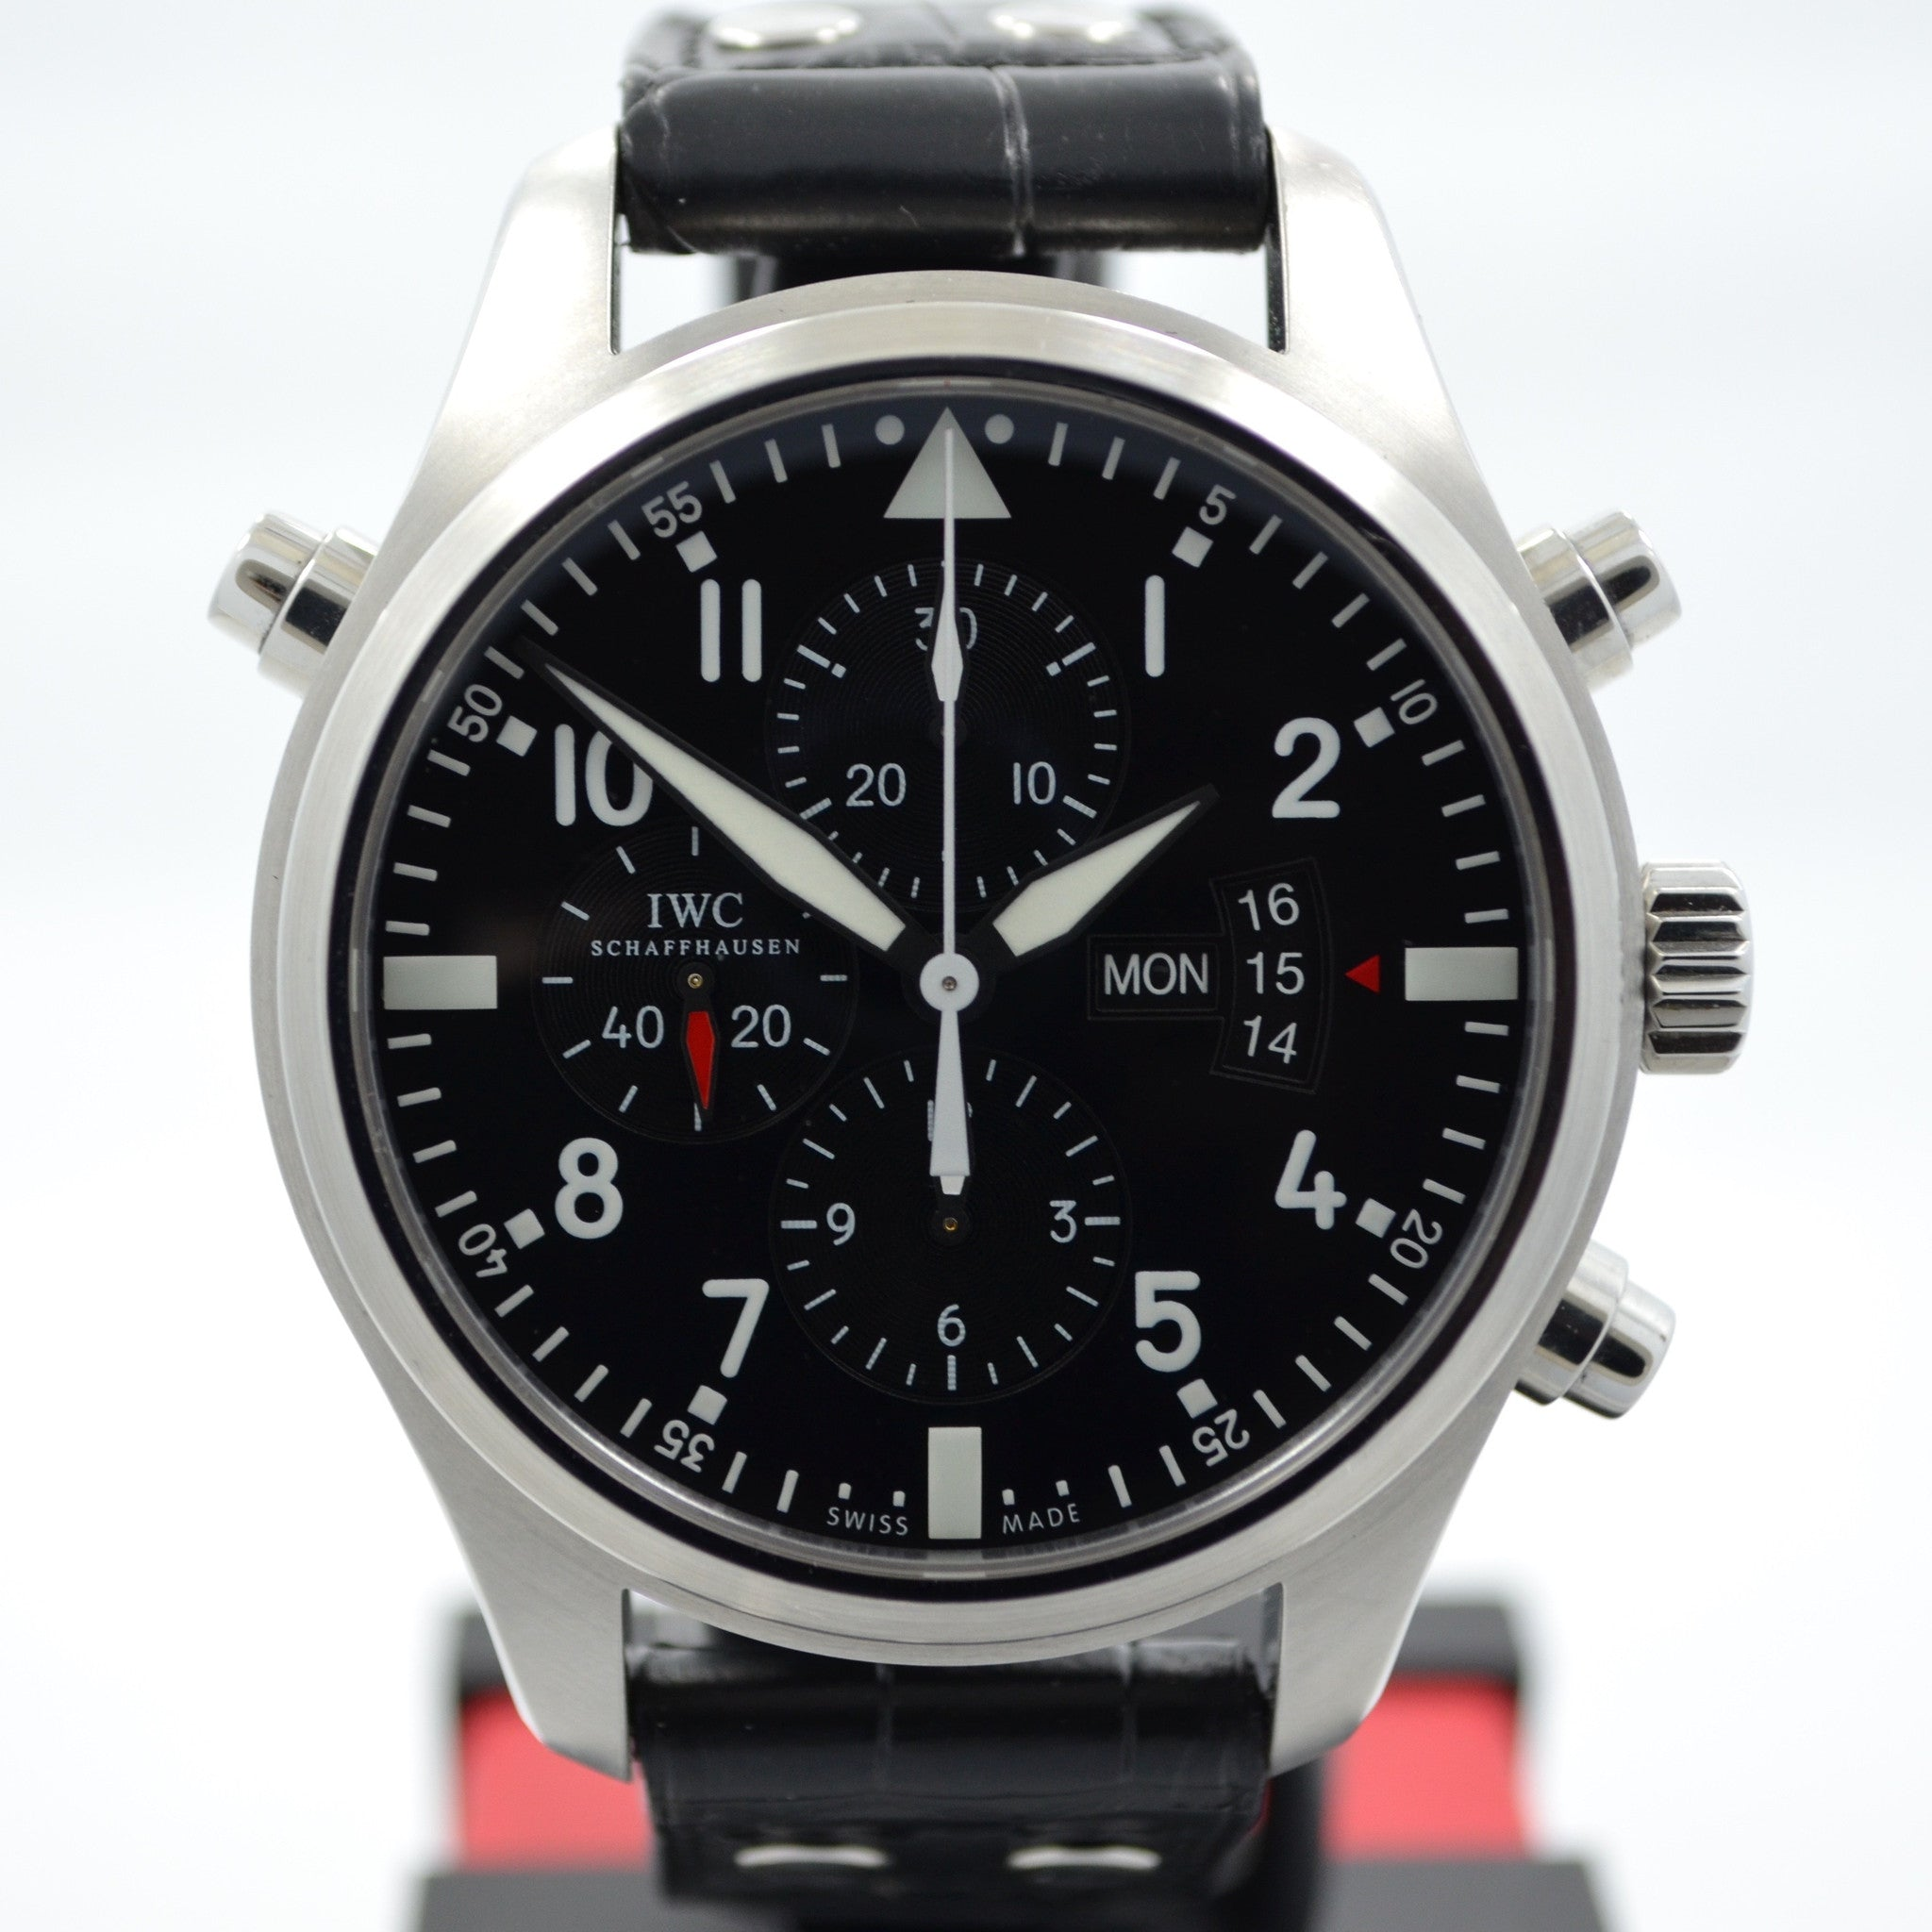 IWC Pilots Double Chronograph IW377801 Stainless Steel Black Dial 46mm Watch